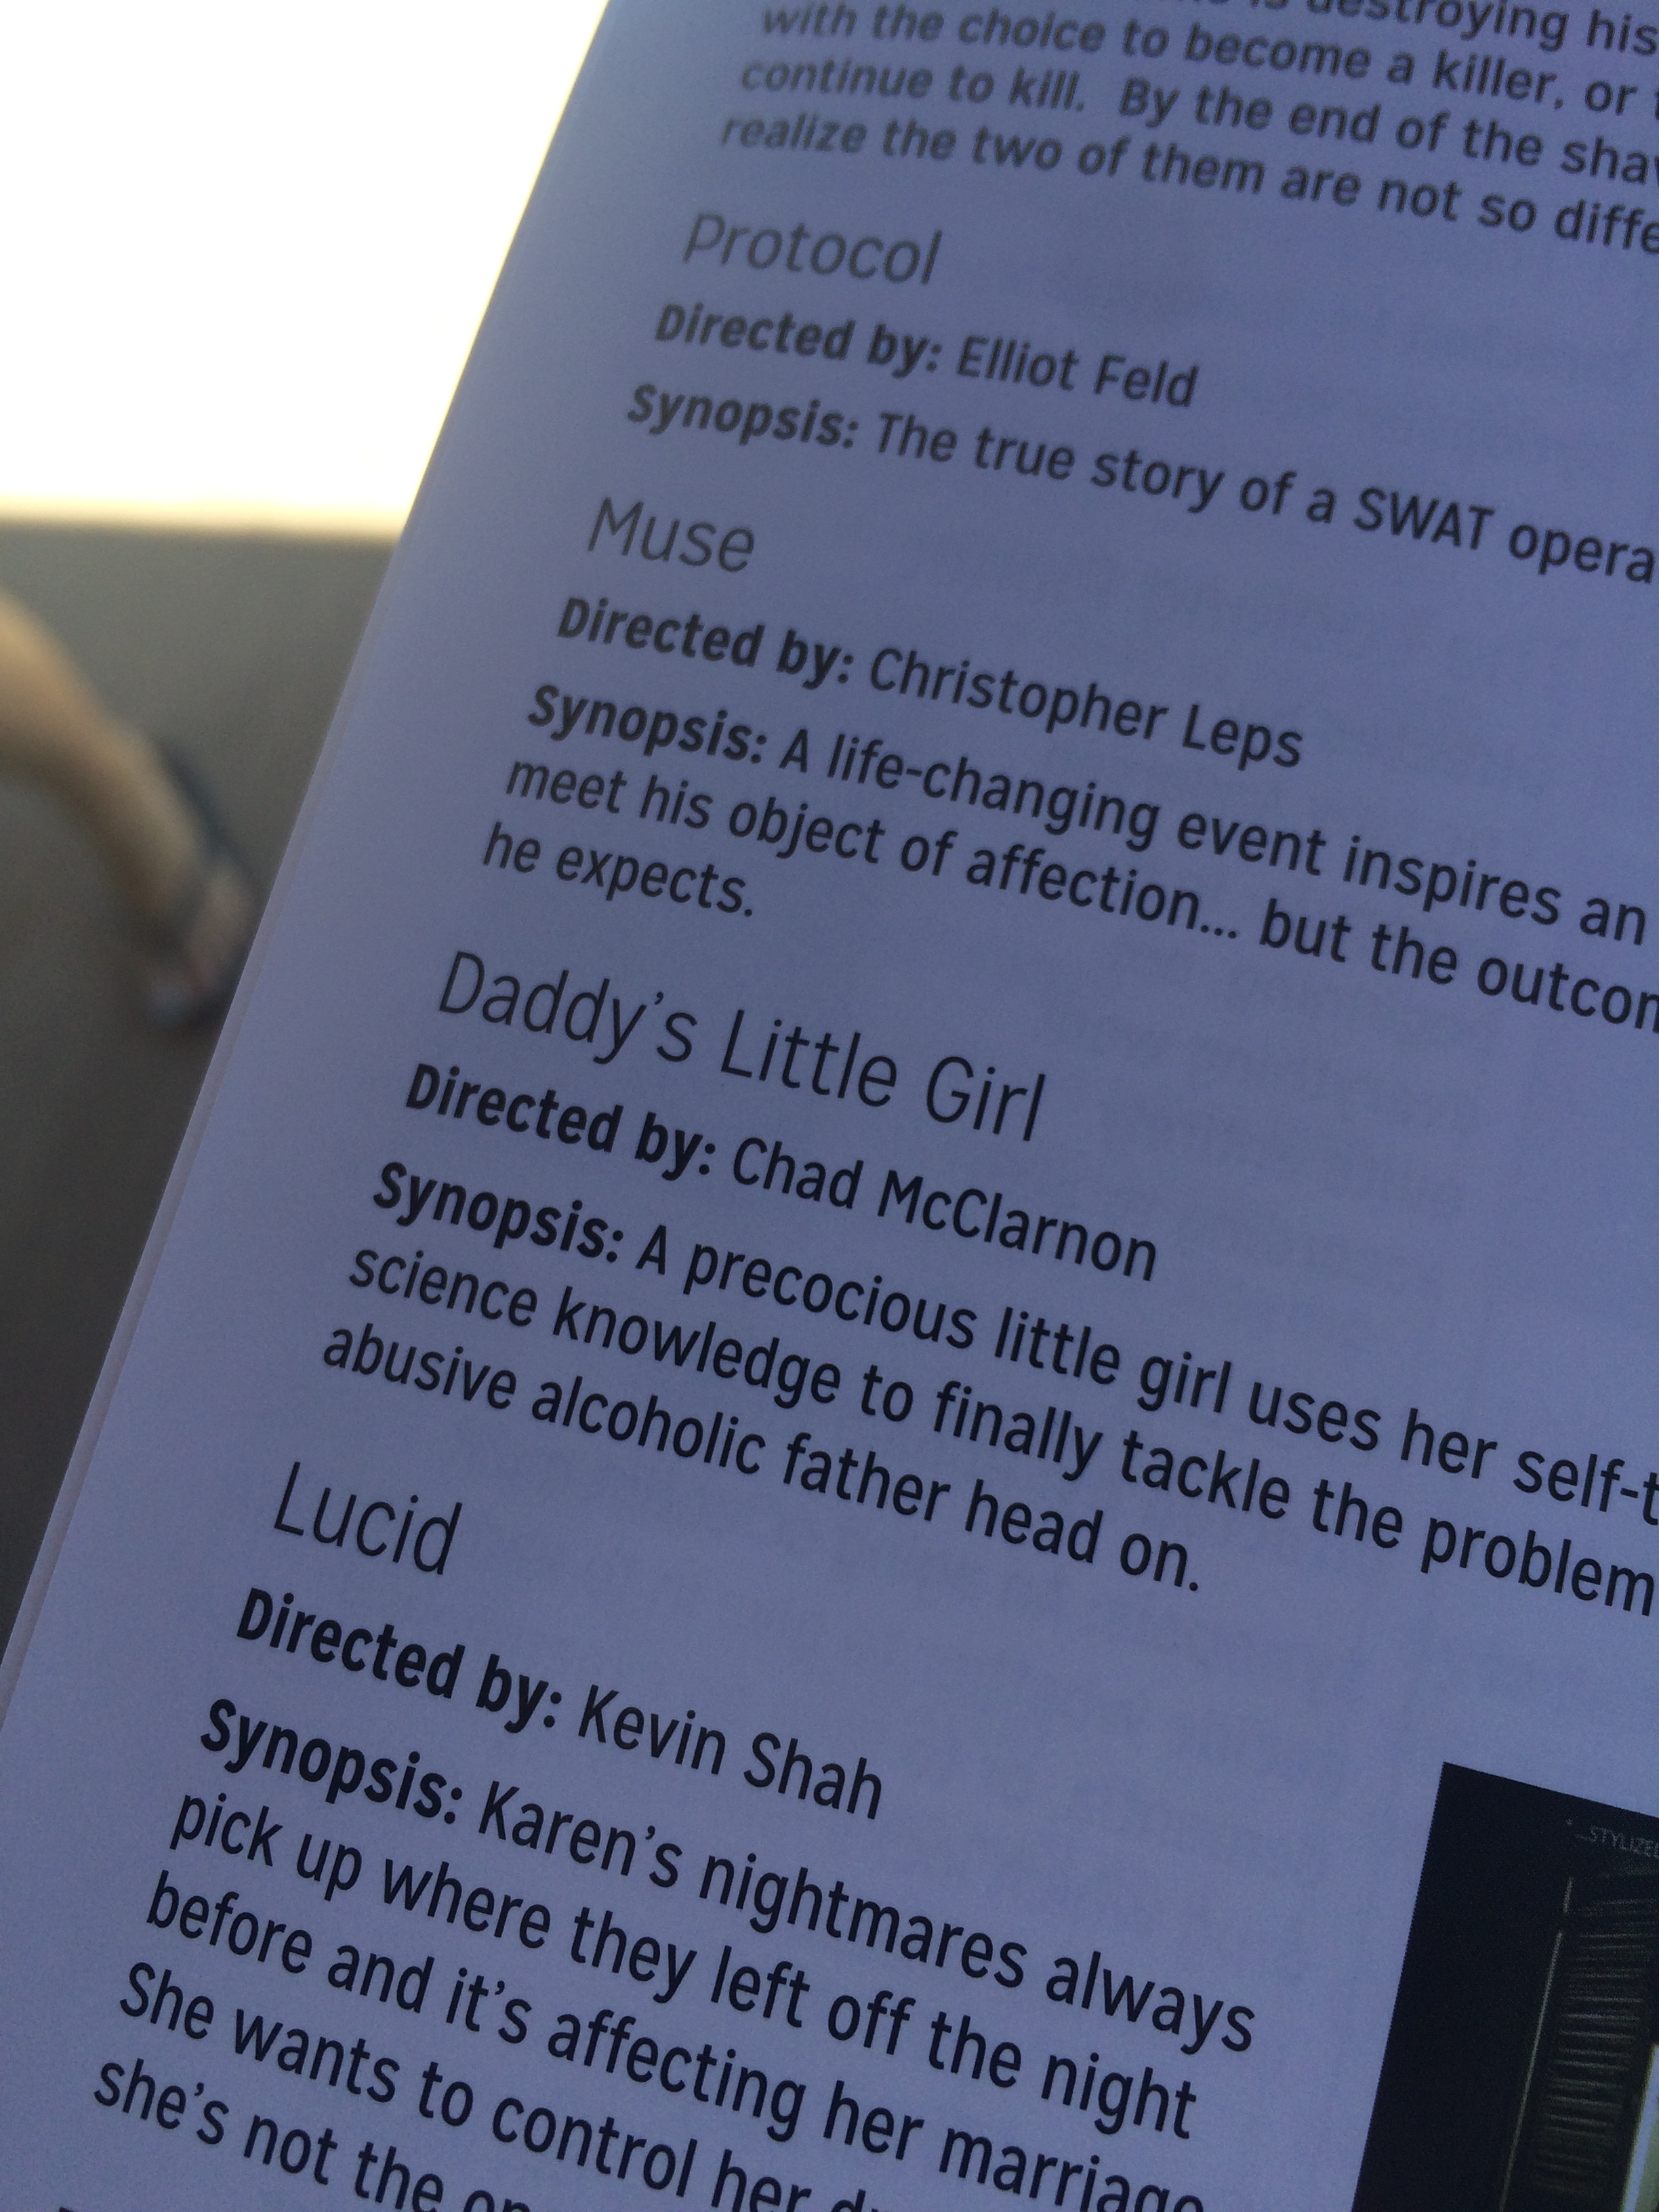 DLG's blurb in the festival program.